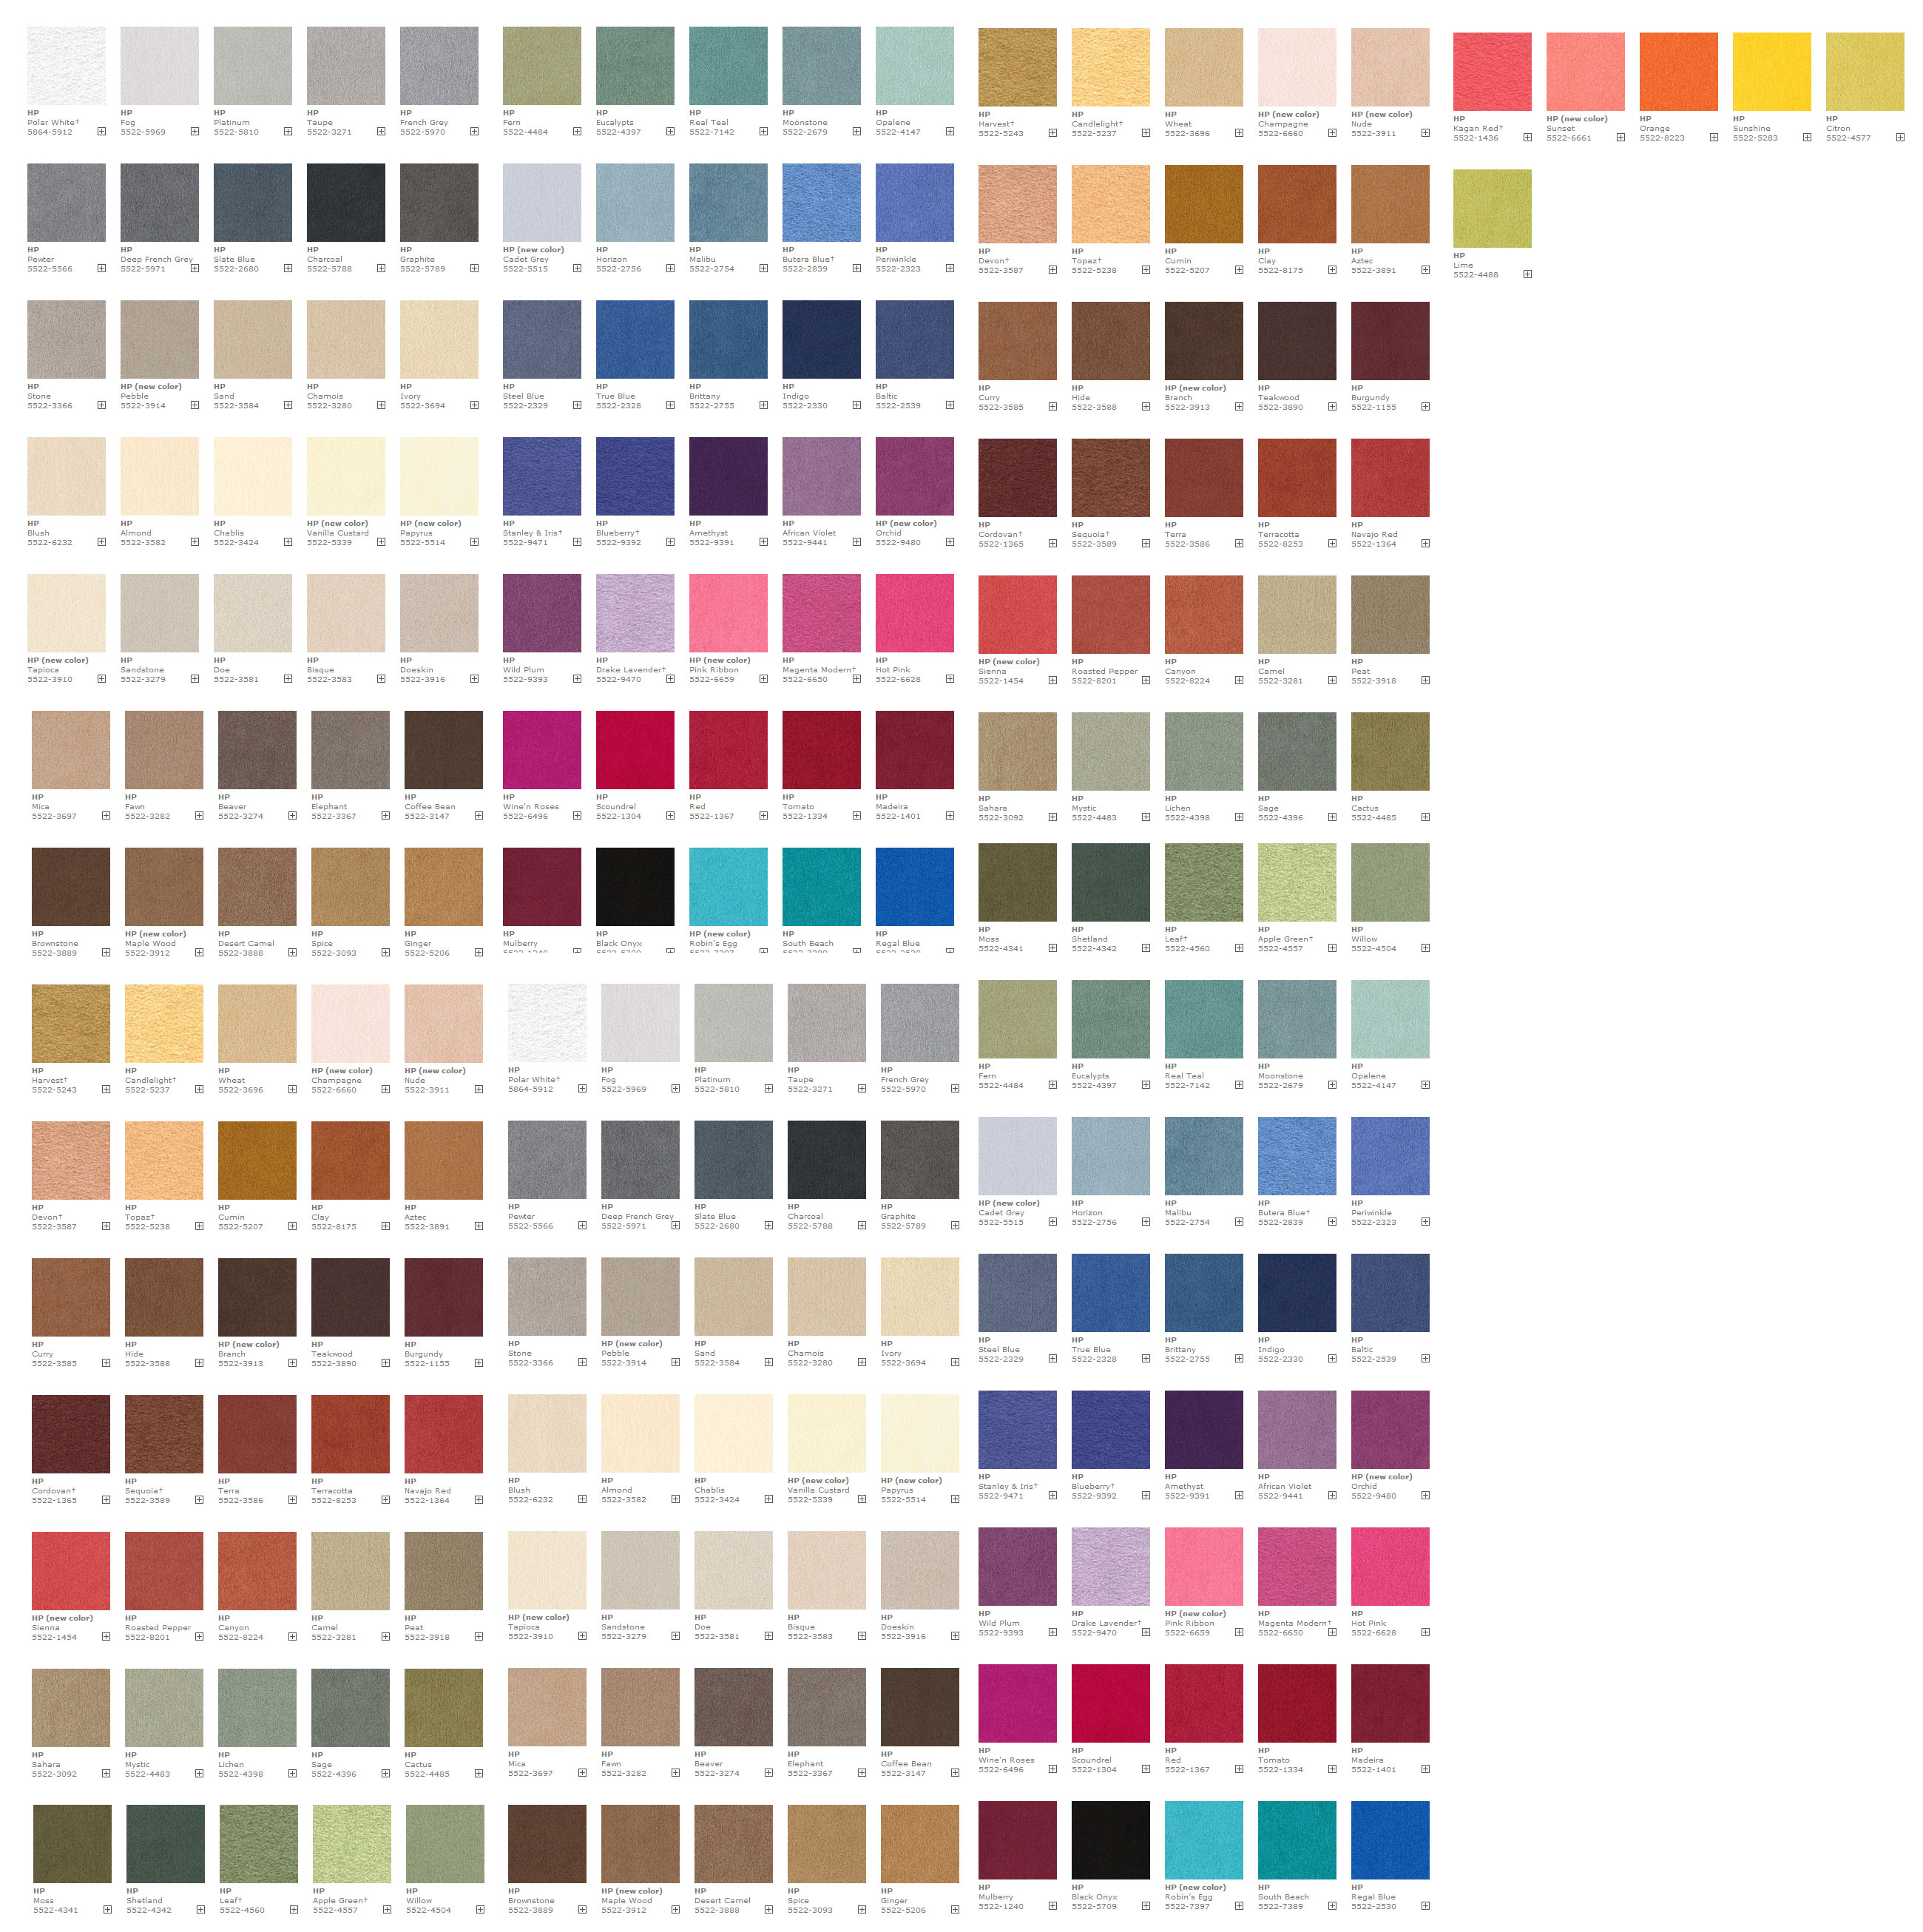 ultrasuede-swatches.jpg